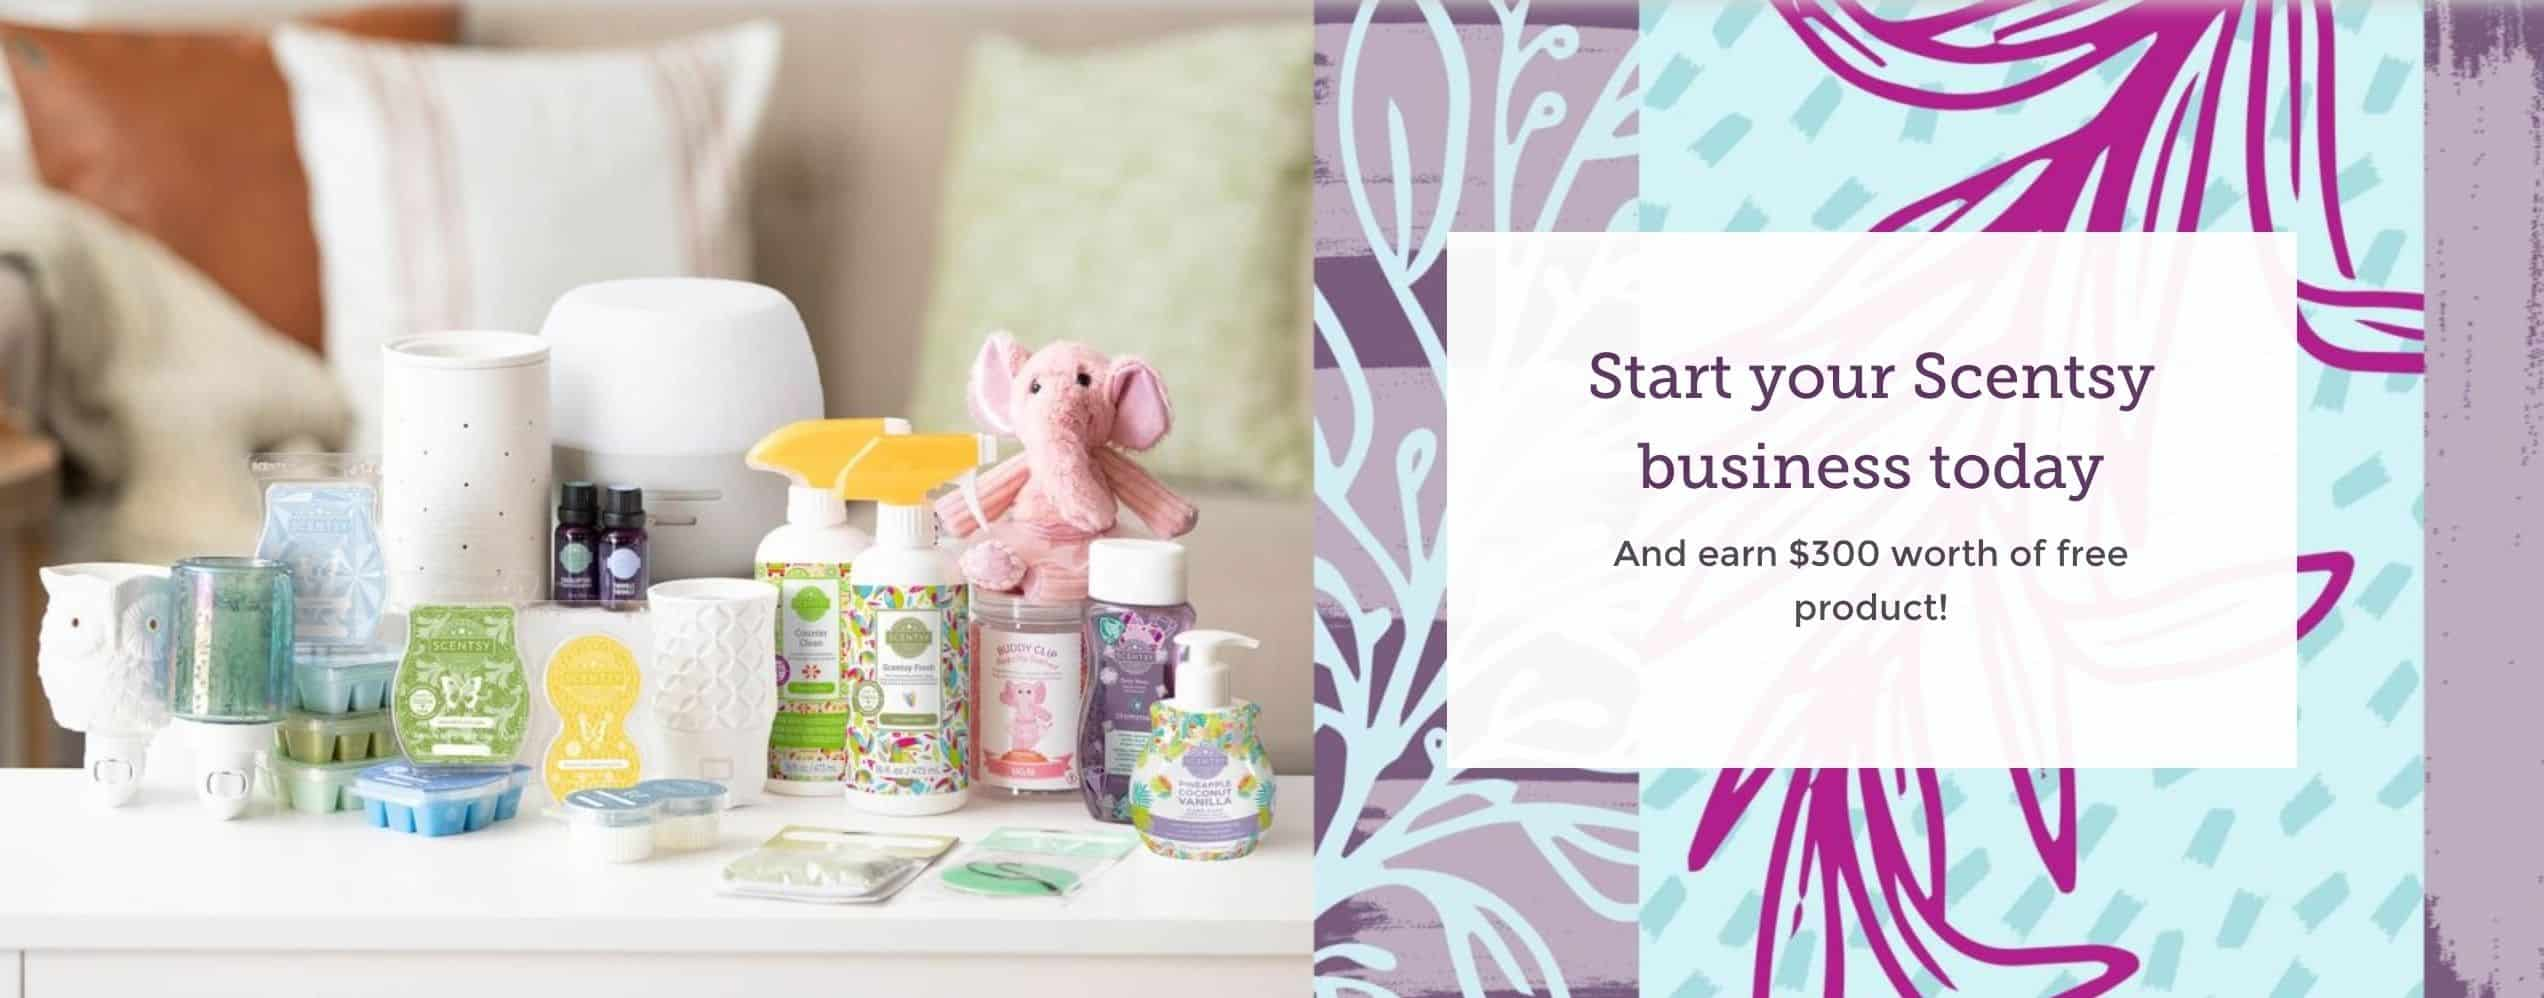 Scentsy Earn Shooting Star in August